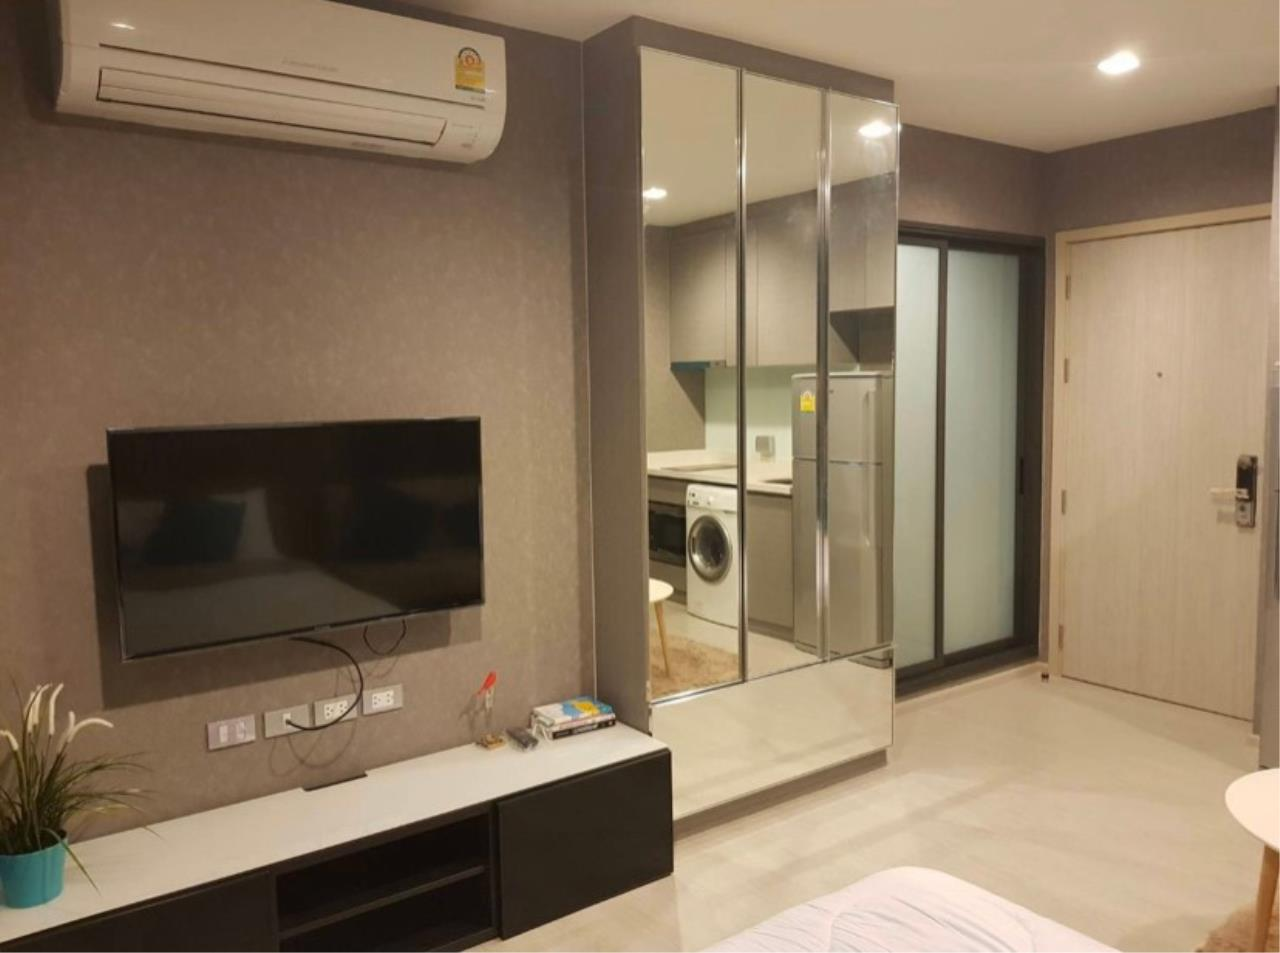 Su Agent Co.,Ltd Agency's BS044 Rhythm SUkhumvit 36-38 Condo for sale 4.9 MB 1